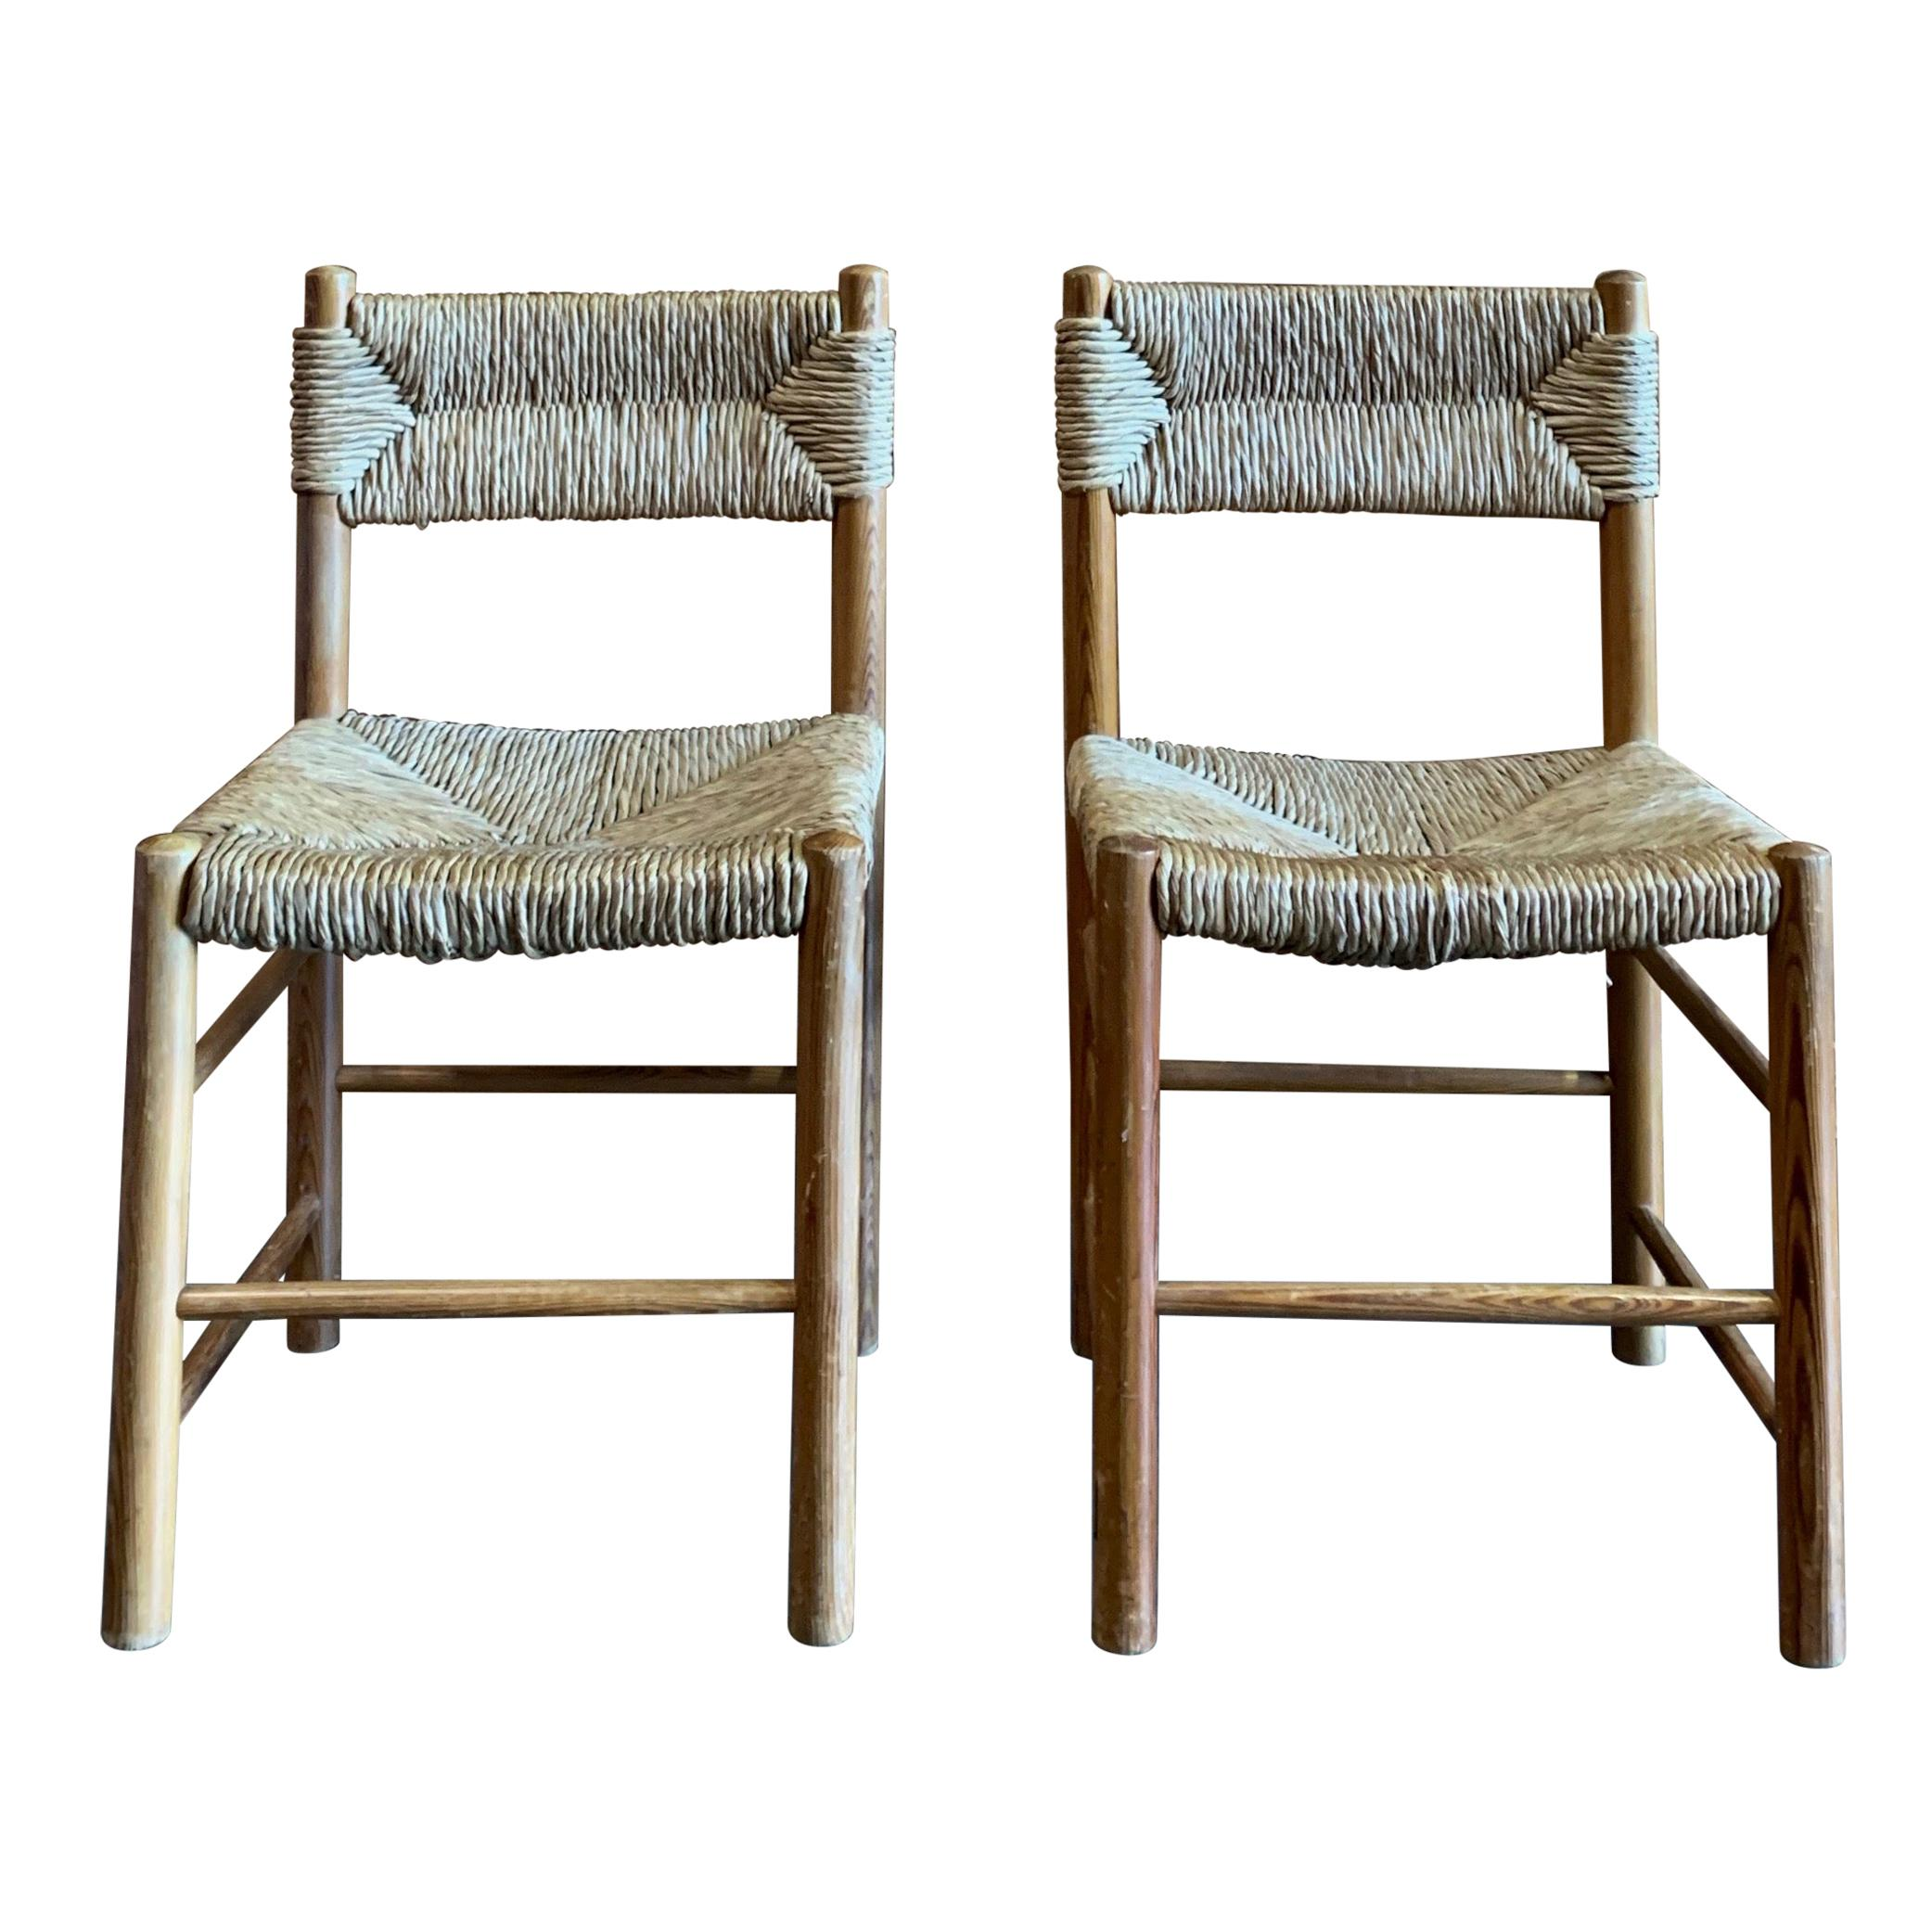 Light Brown Charlotte Perriand Chairs